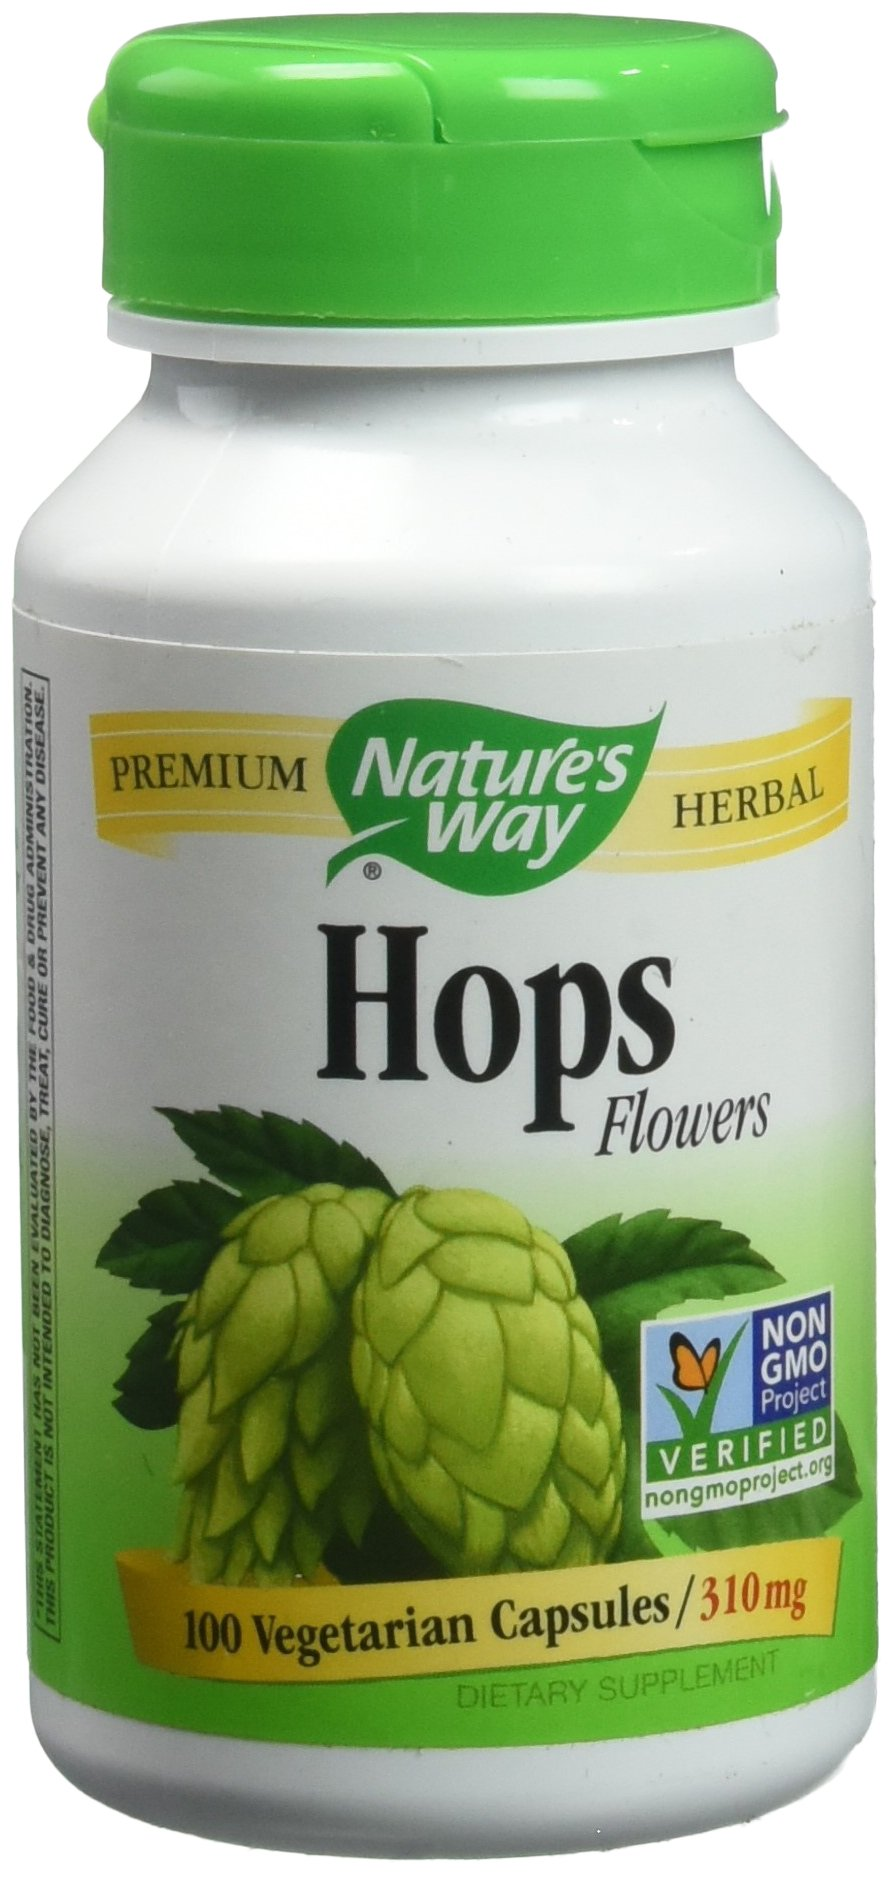 Nature's Way Hops Flowers - 100 Capsules